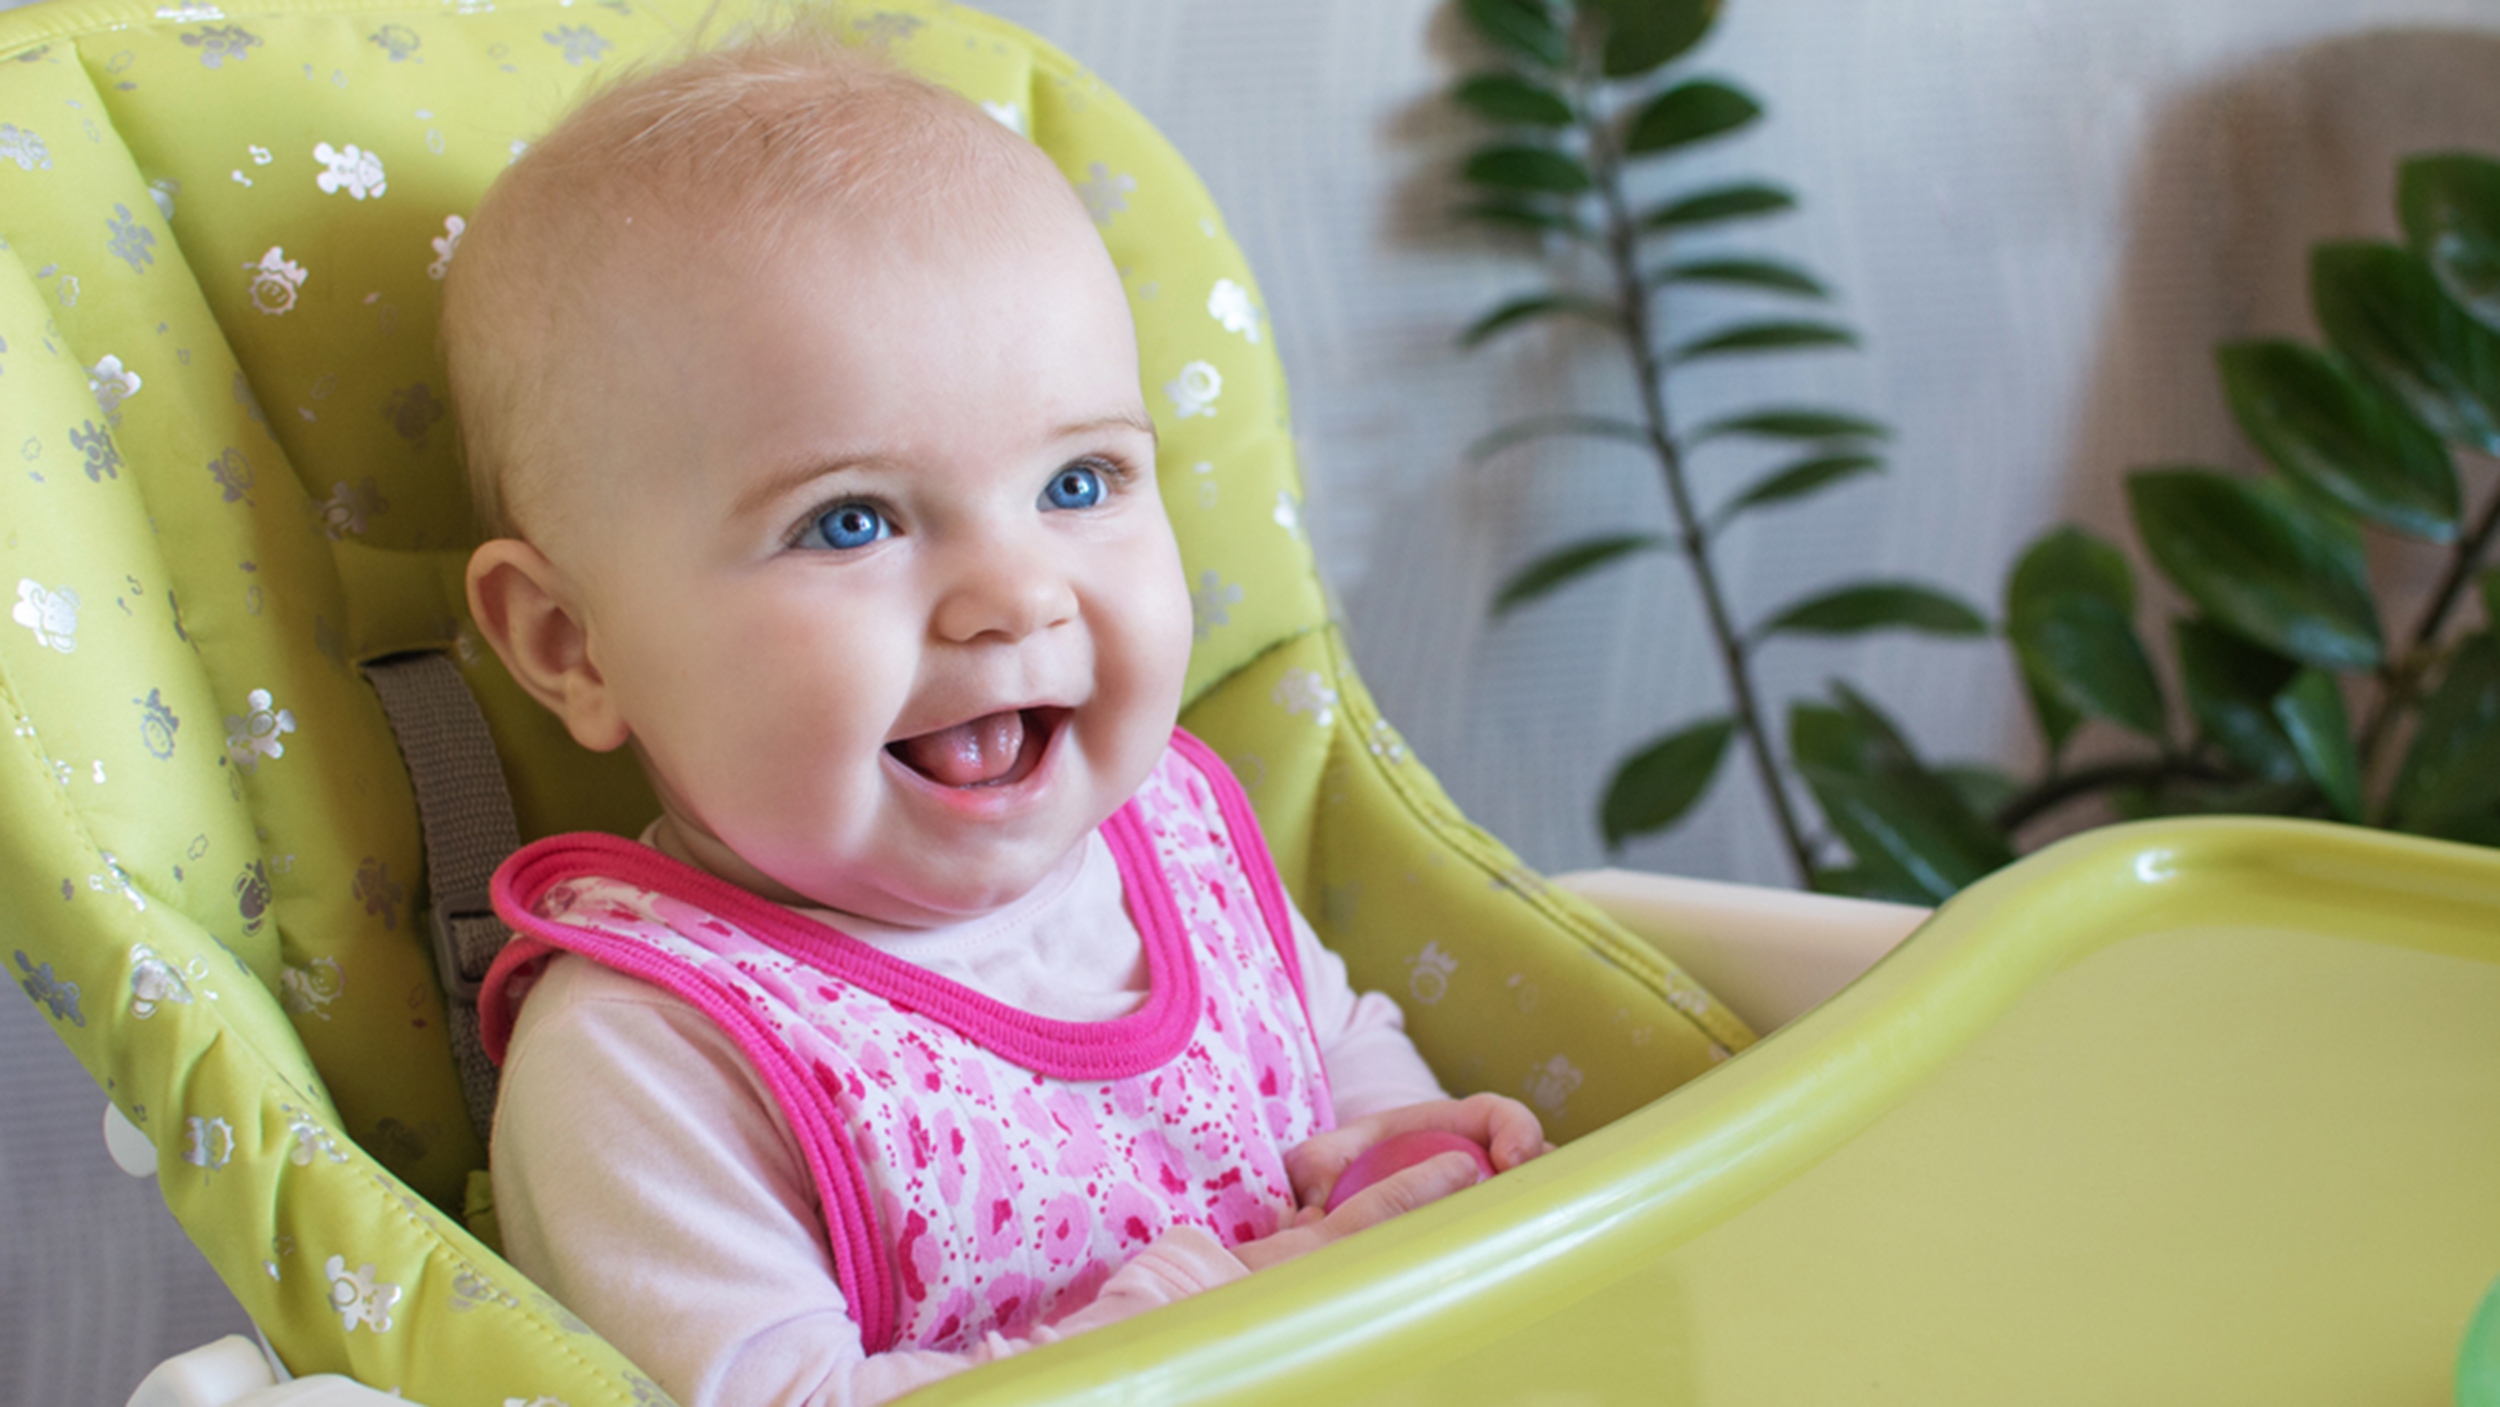 Baby Food Chair Top 6 Finger Foods That Are Safe And Delicious For Infants